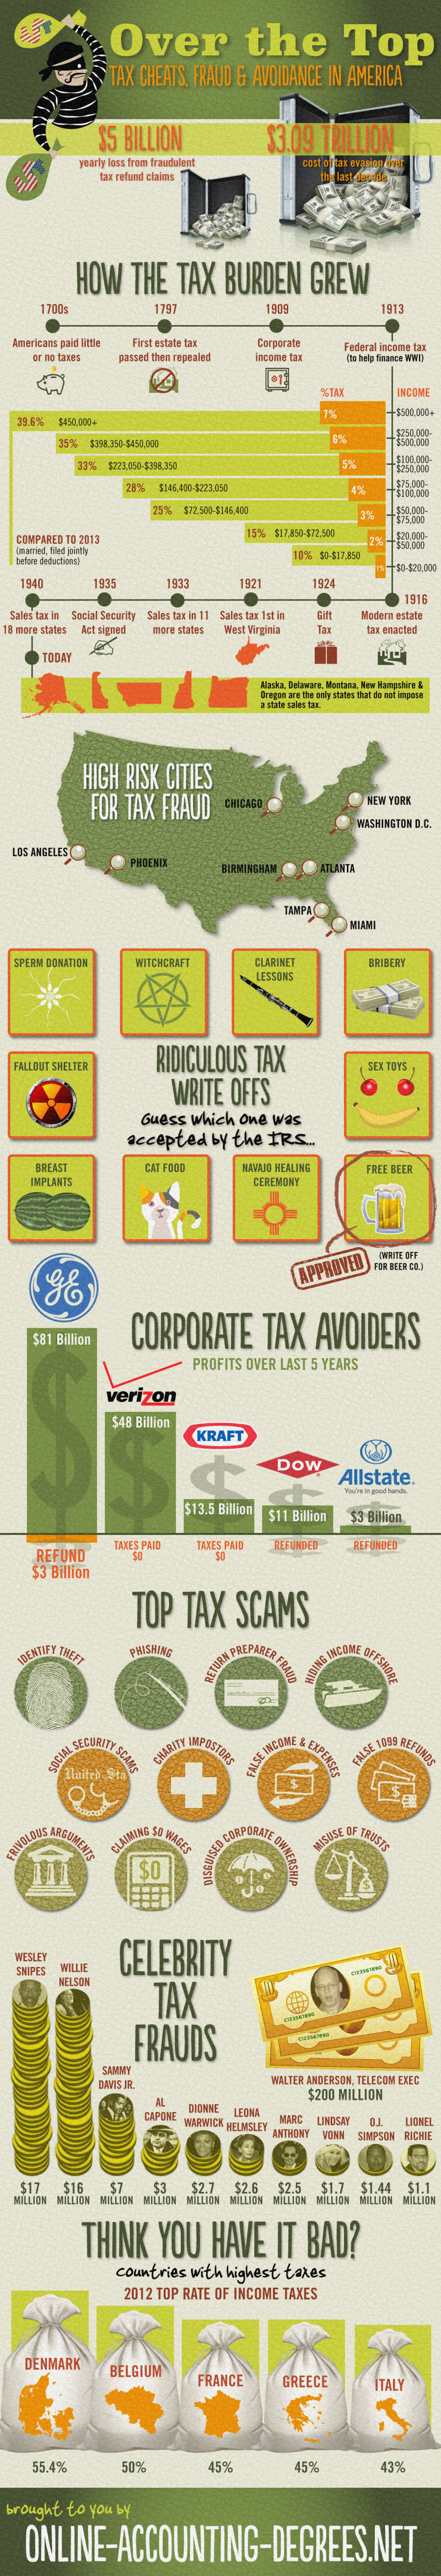 Tax Cheats, Fraud and Avoidance in America Infographic